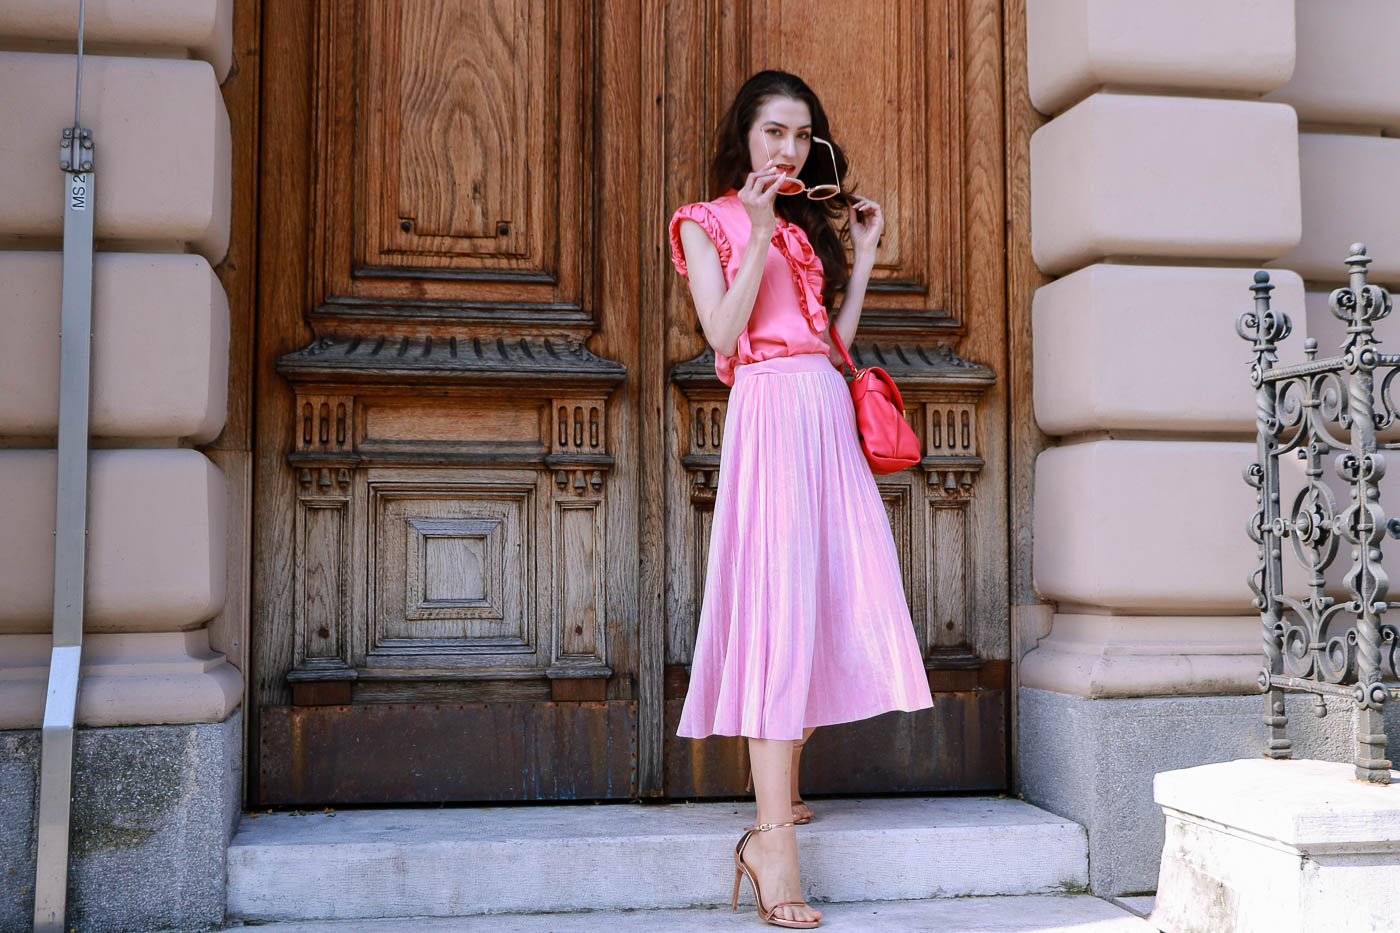 Fashion Blogger Veronika Lipar of Brunette from Wall Street wearing round framed sunglasses, pink pleated midi skirt, pink top, hot pink top handle bag and metallic rose gold sandals while standing at the door